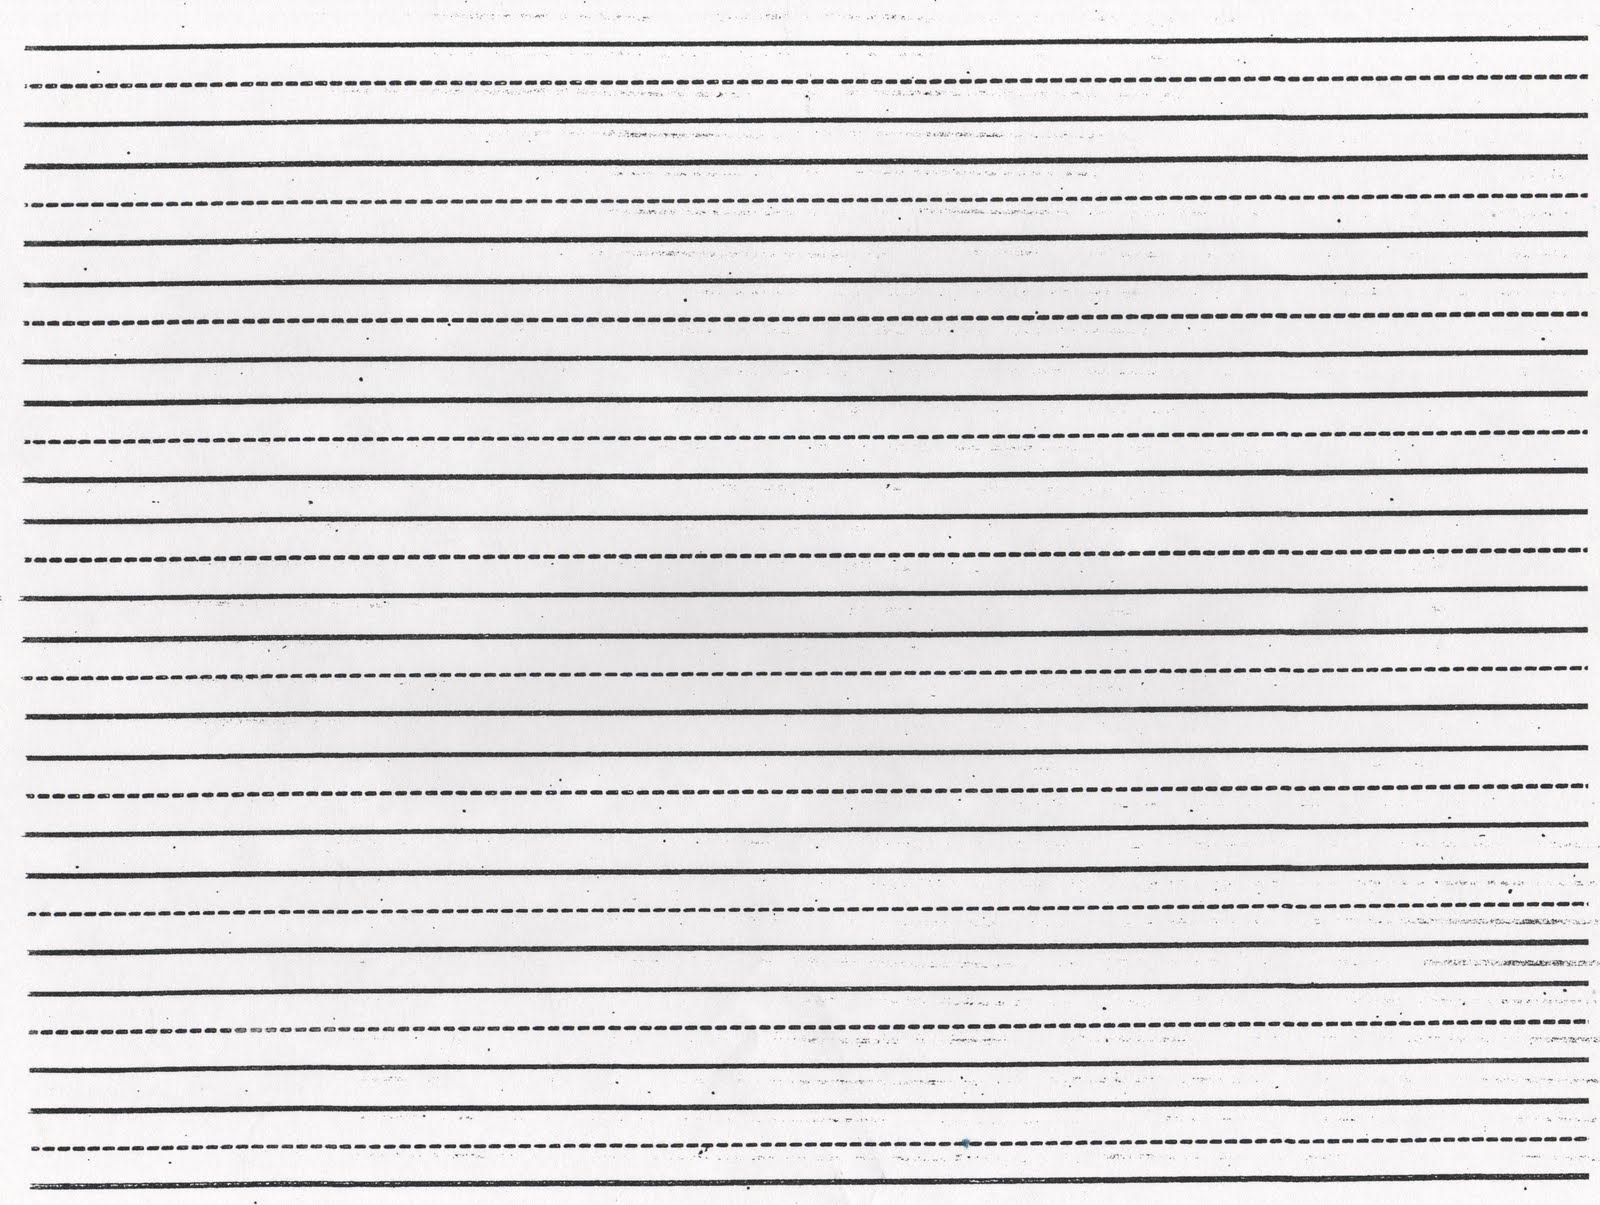 elementary writing paper template Use this 'writing paper: snowman (elementary)' printable worksheet in the classroom or at home your students will love this 'writing paper: snowman (elementary)' trace and cut out the lined snowman pattern for a great shapebook a trip to japan (elem/upper elem) - cover only writing activity use this 'writing activity: a trip to japan (elem/upper elem).